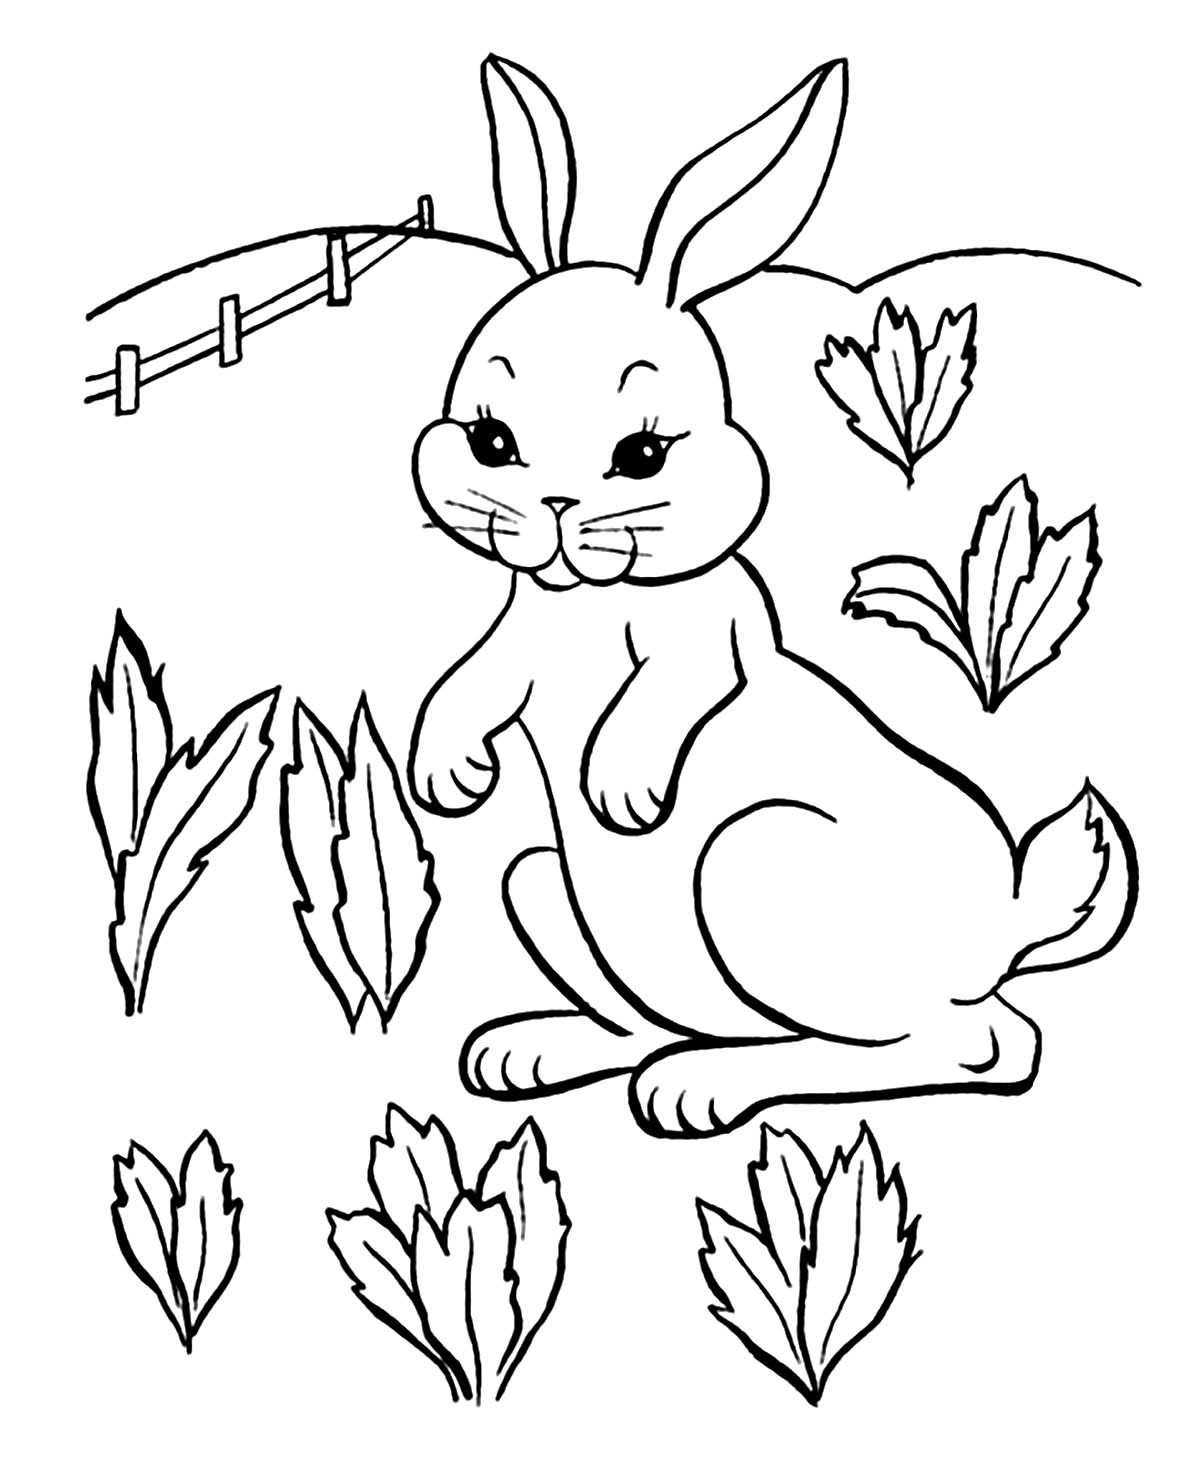 rabbit coloring sheet rabbit free to color for children rabbit kids coloring pages rabbit sheet coloring